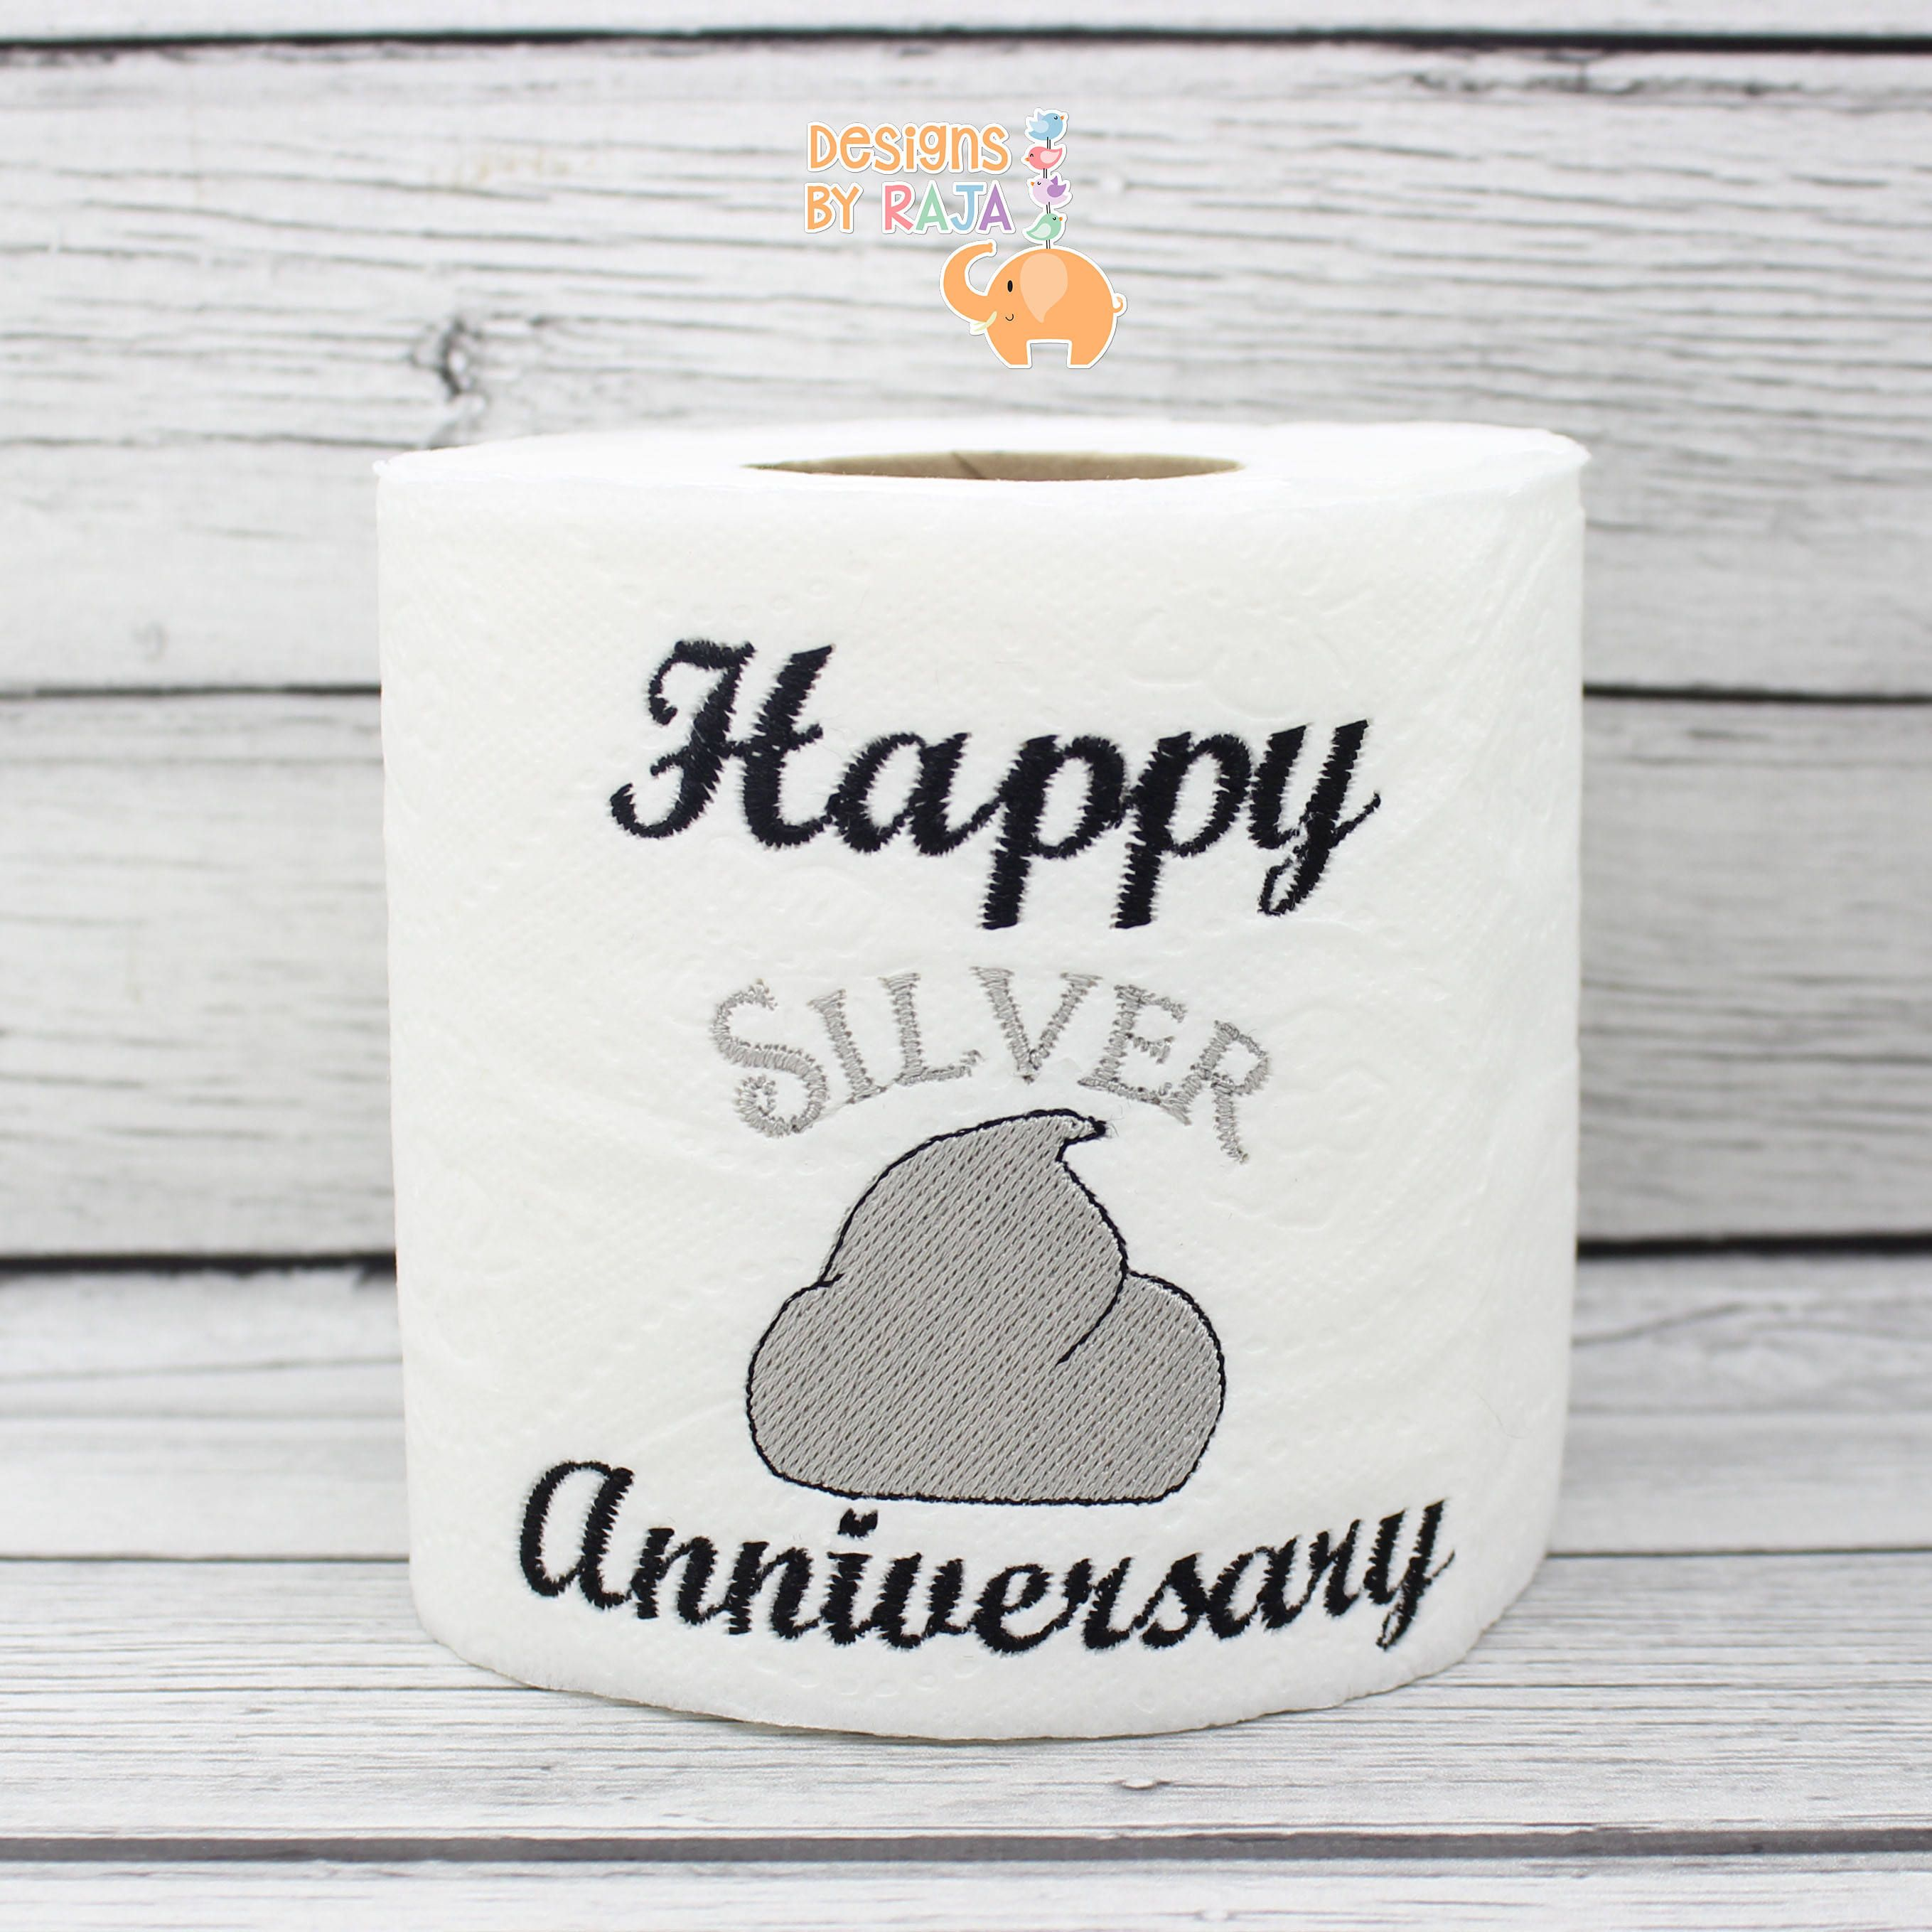 Happy Silver Anniversary Embroidered Toilet Paper 25th Anniversary Gift Funny Gag Gift Bathroom Silver Anniversary Embroidered Toilet Paper Gag Gifts Funny